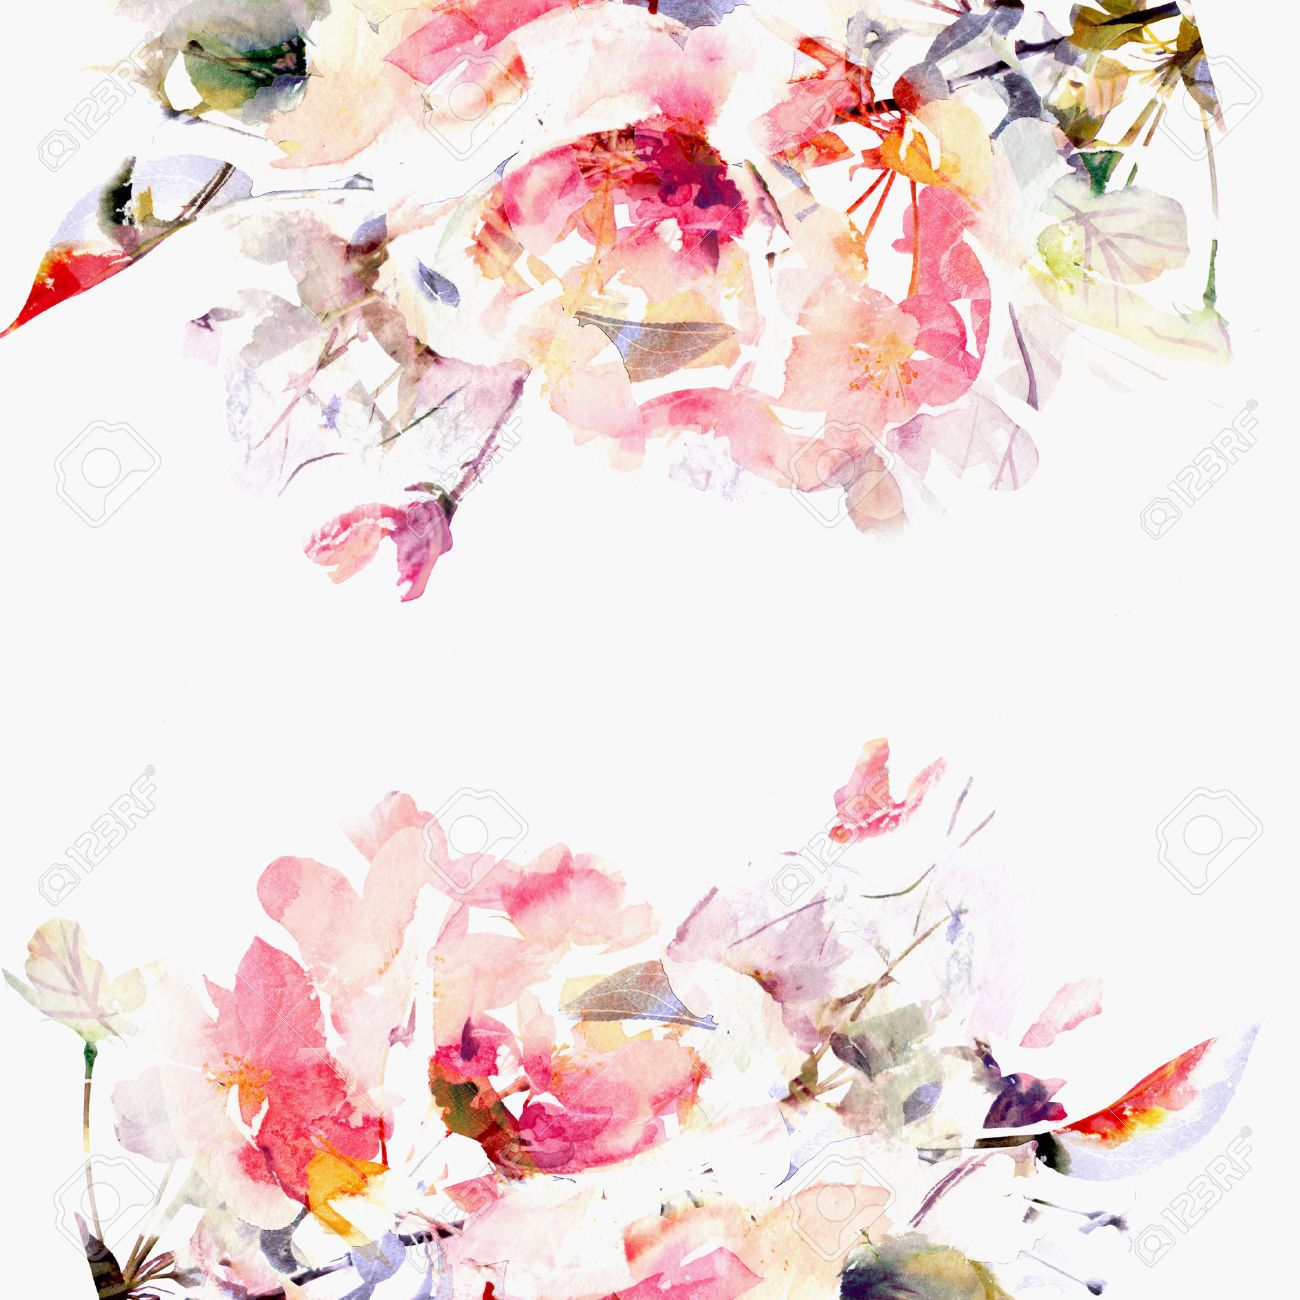 Watercolour floral backgrounds google search craft for Cadre floral mural